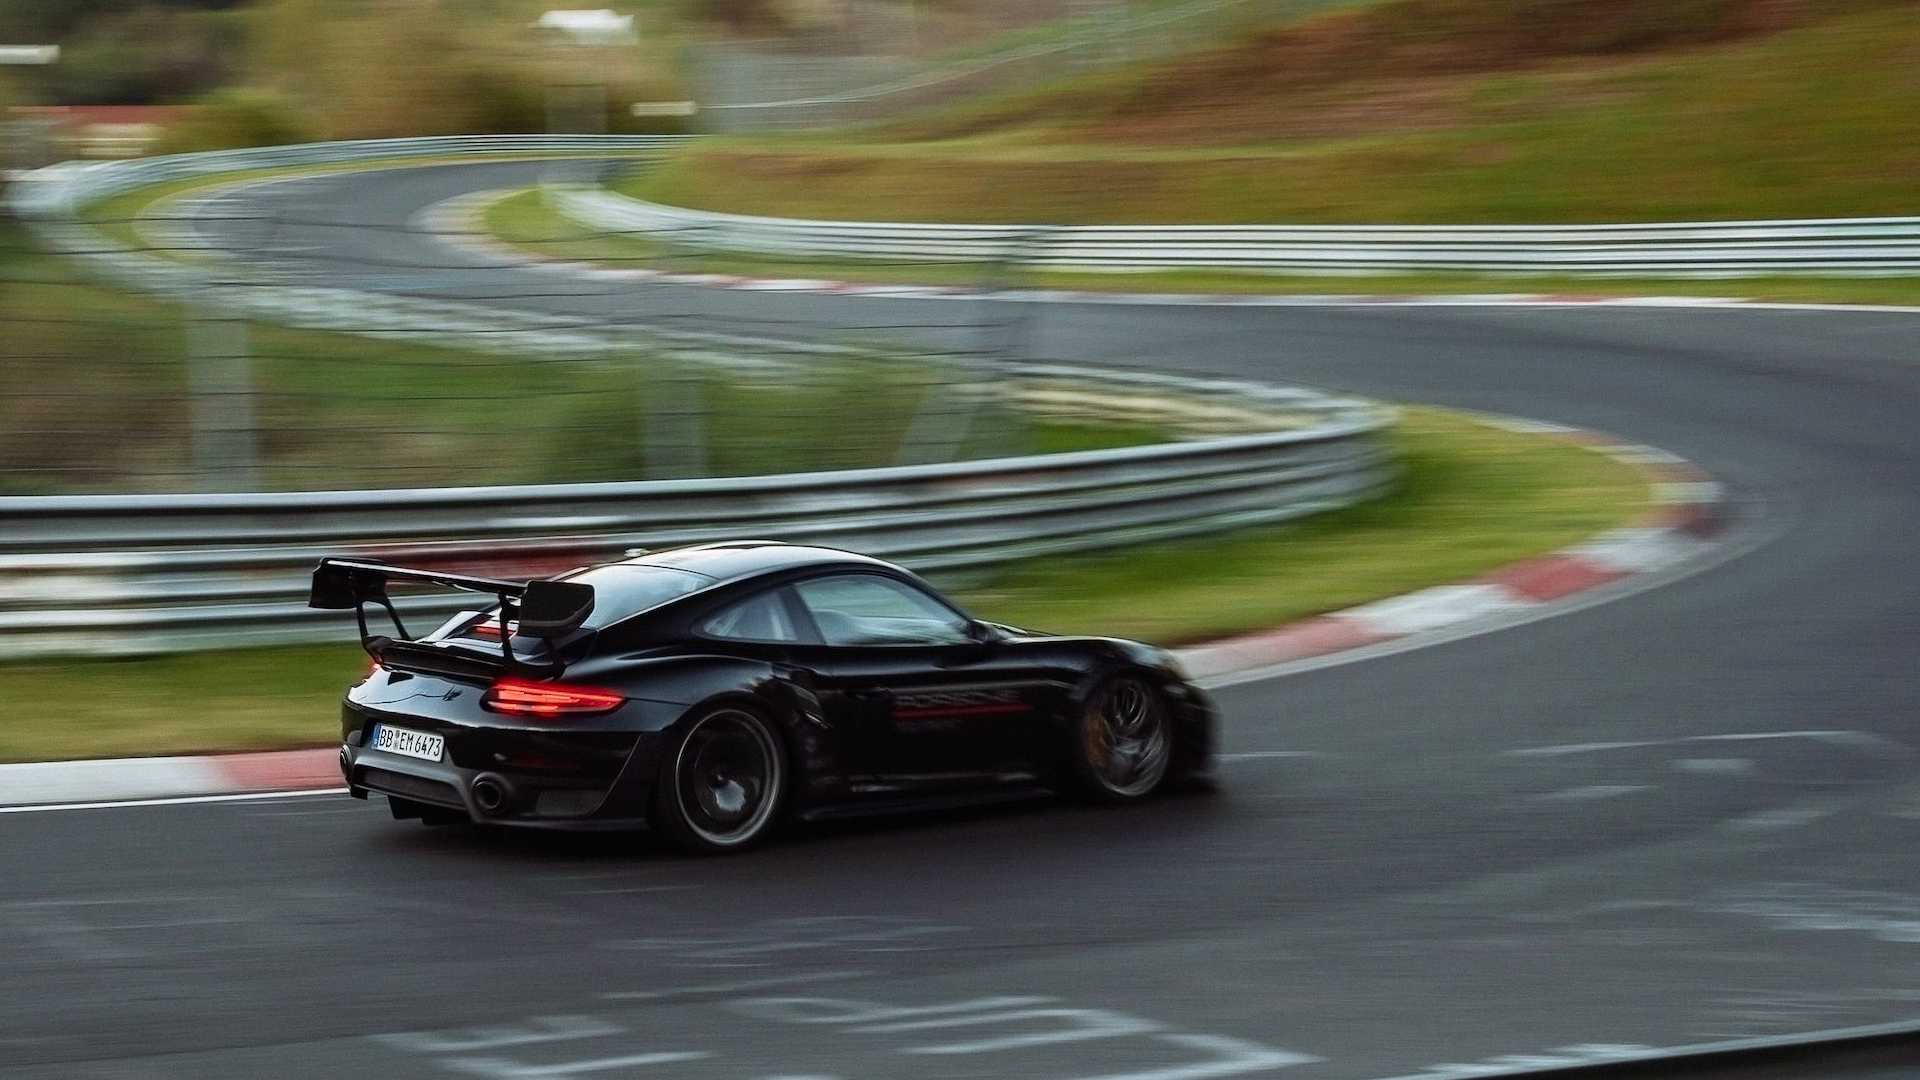 Porsche-911-GT2-RS-Manthey-Performance-Kit-Nurburgring-Record-26